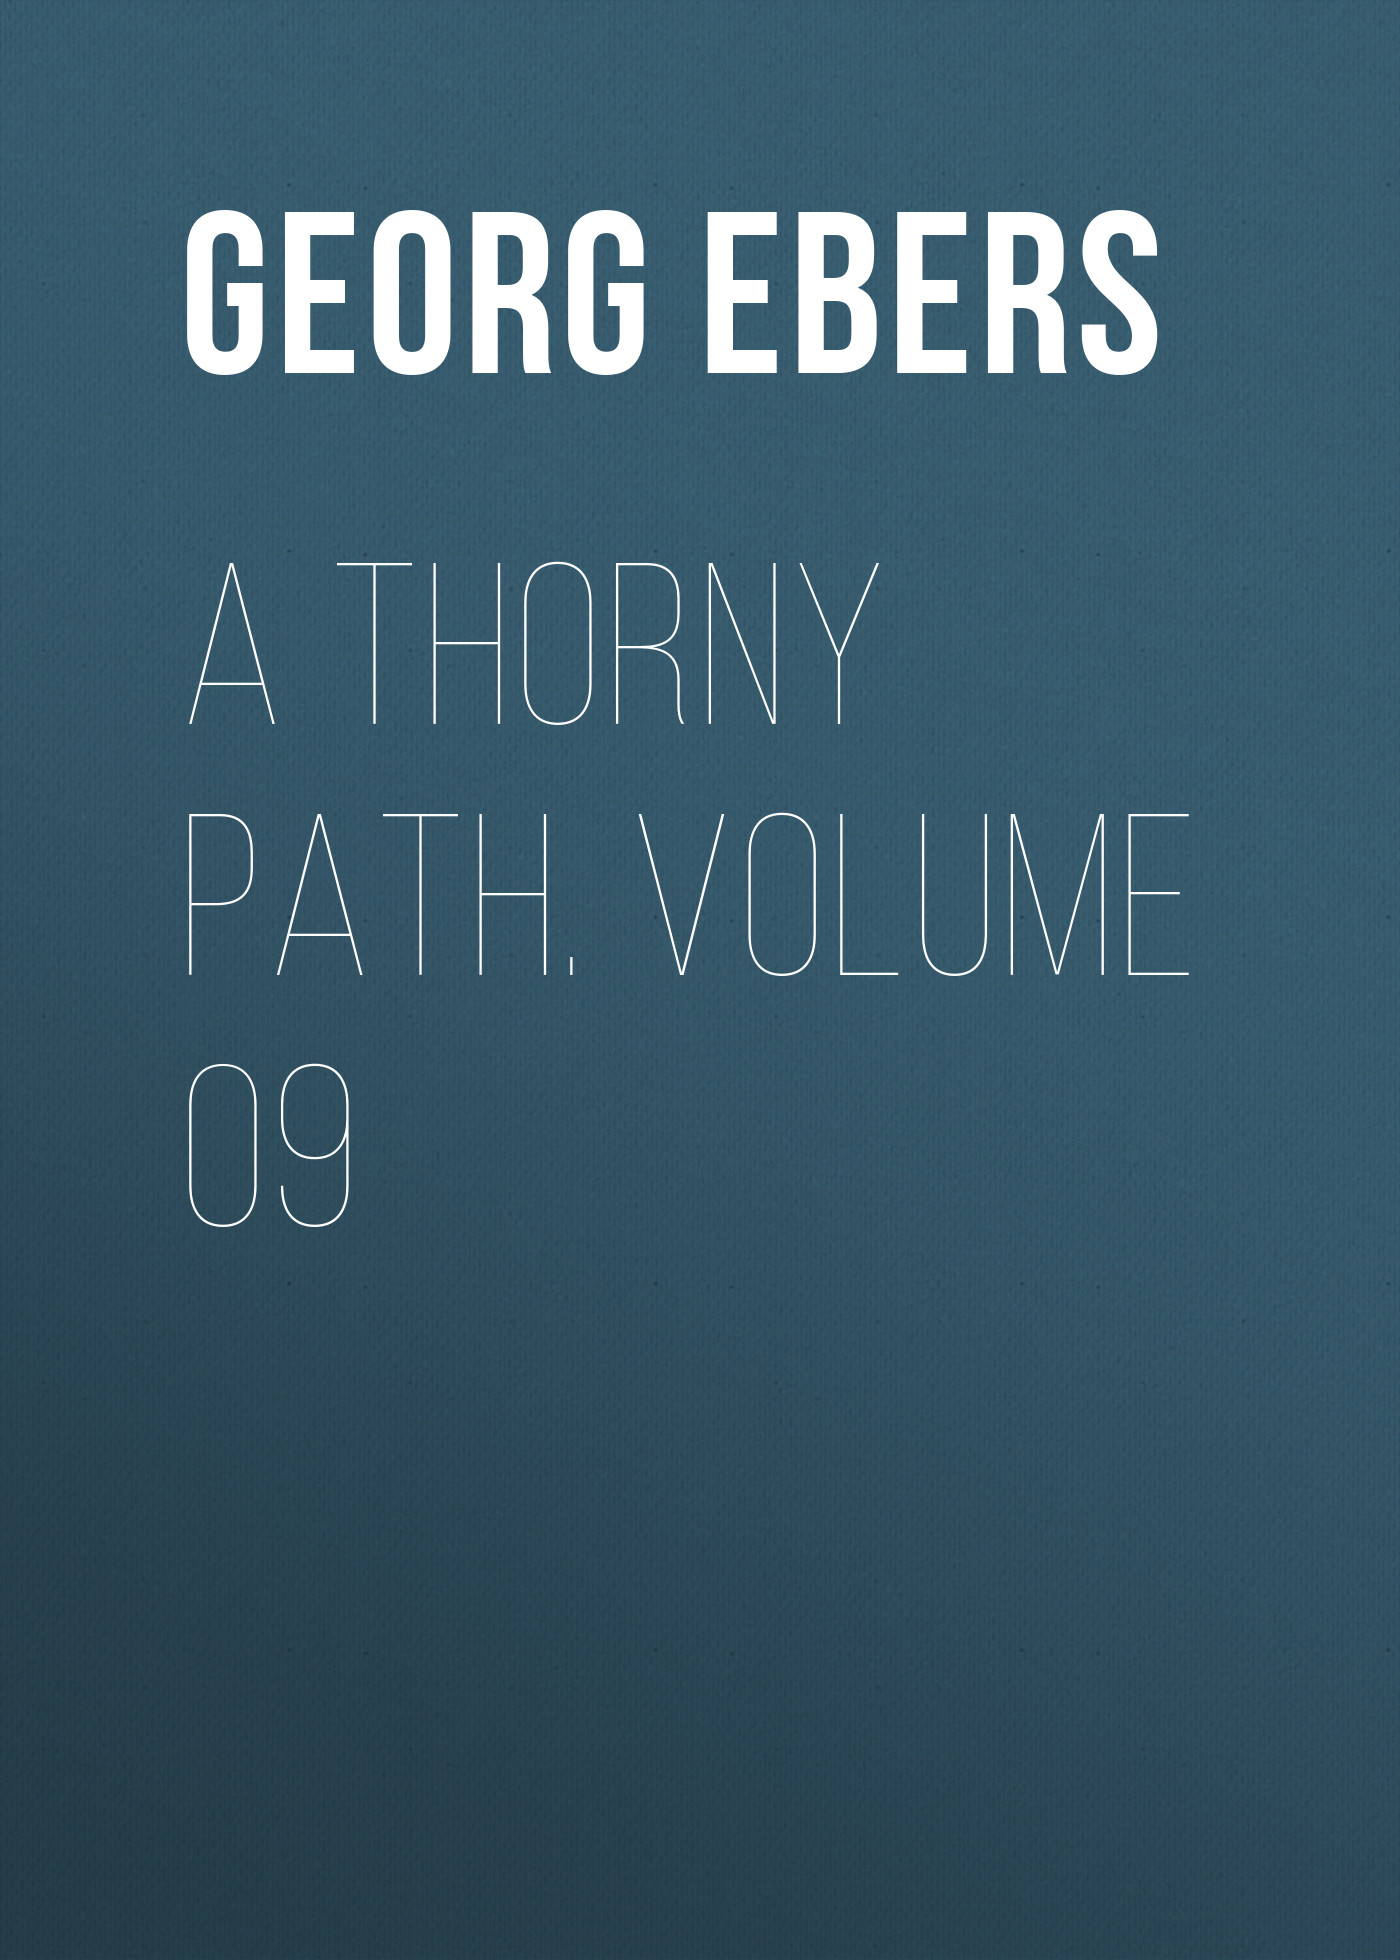 Georg Ebers A Thorny Path. Volume 09